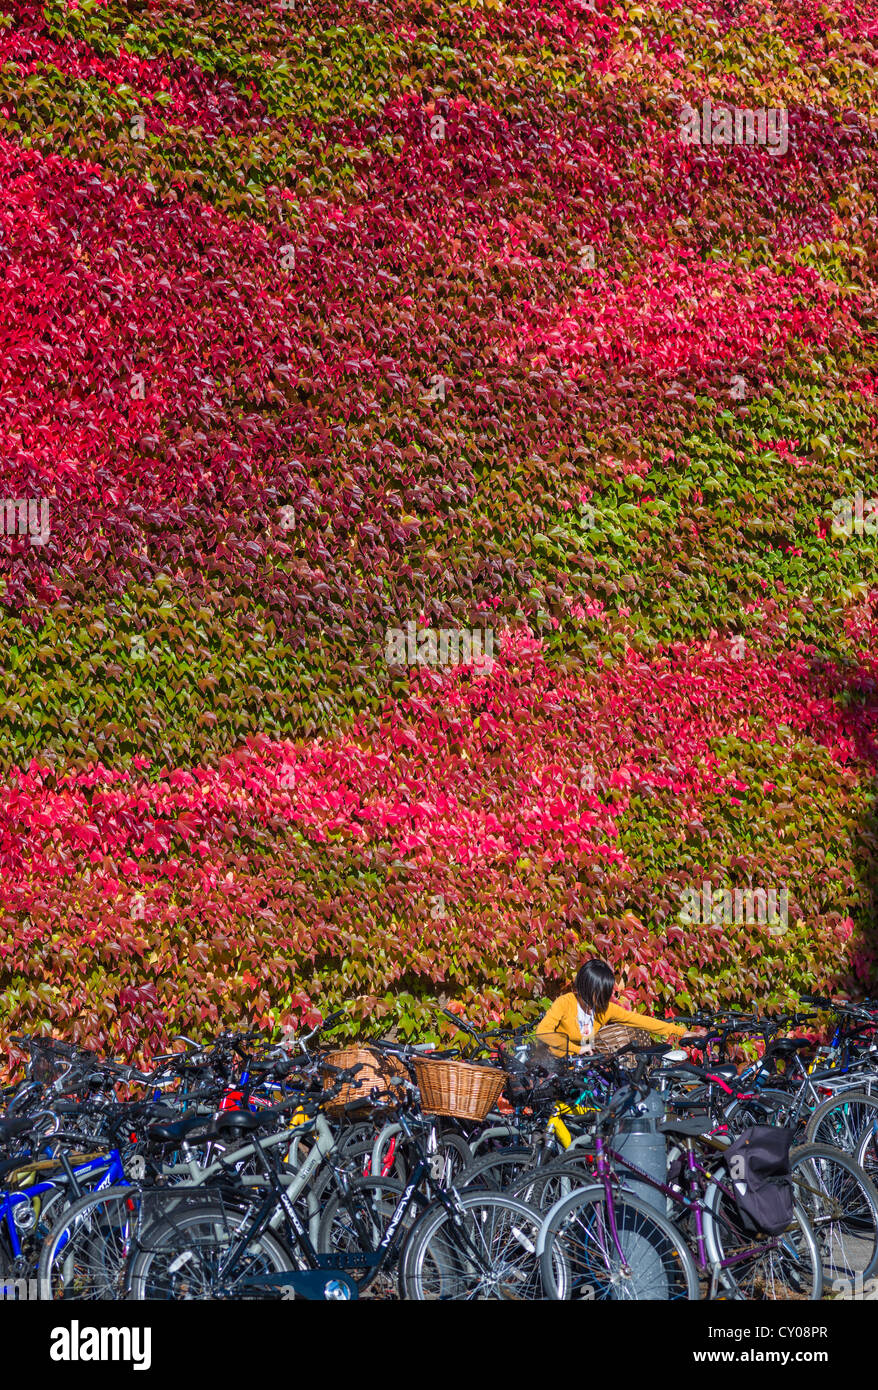 churchill-college-covered-in-red-ivy-on-